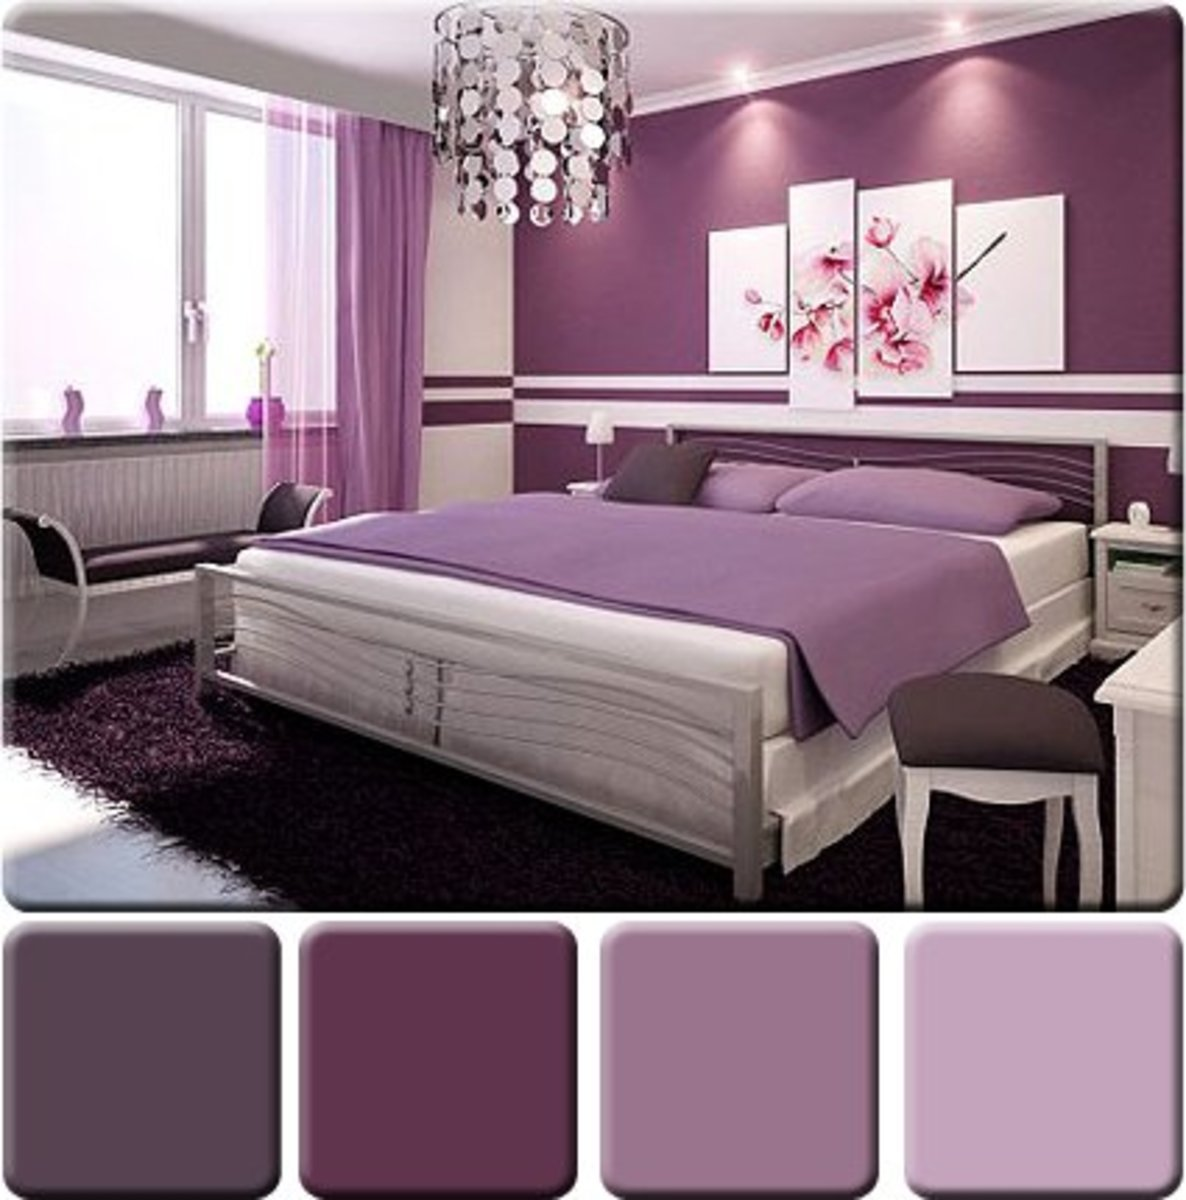 Monochromatic color scheme for interior design Interior colour design